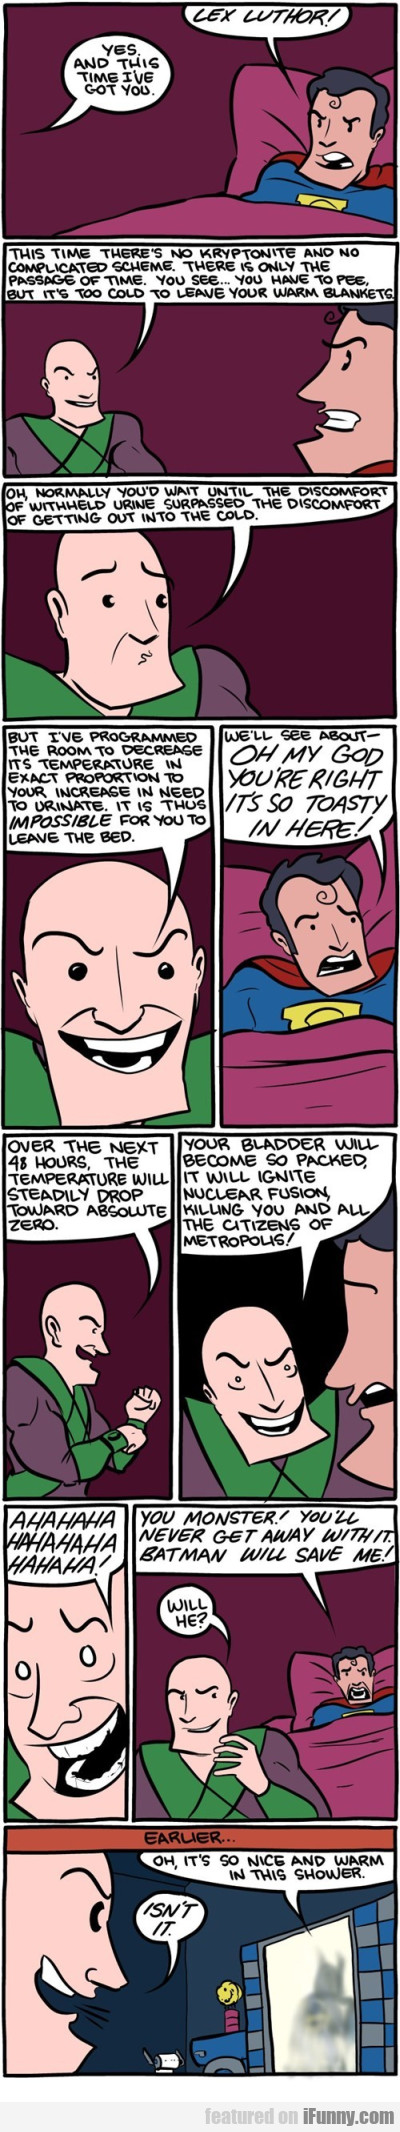 Lex Luthor! Yes. and this time I've got you